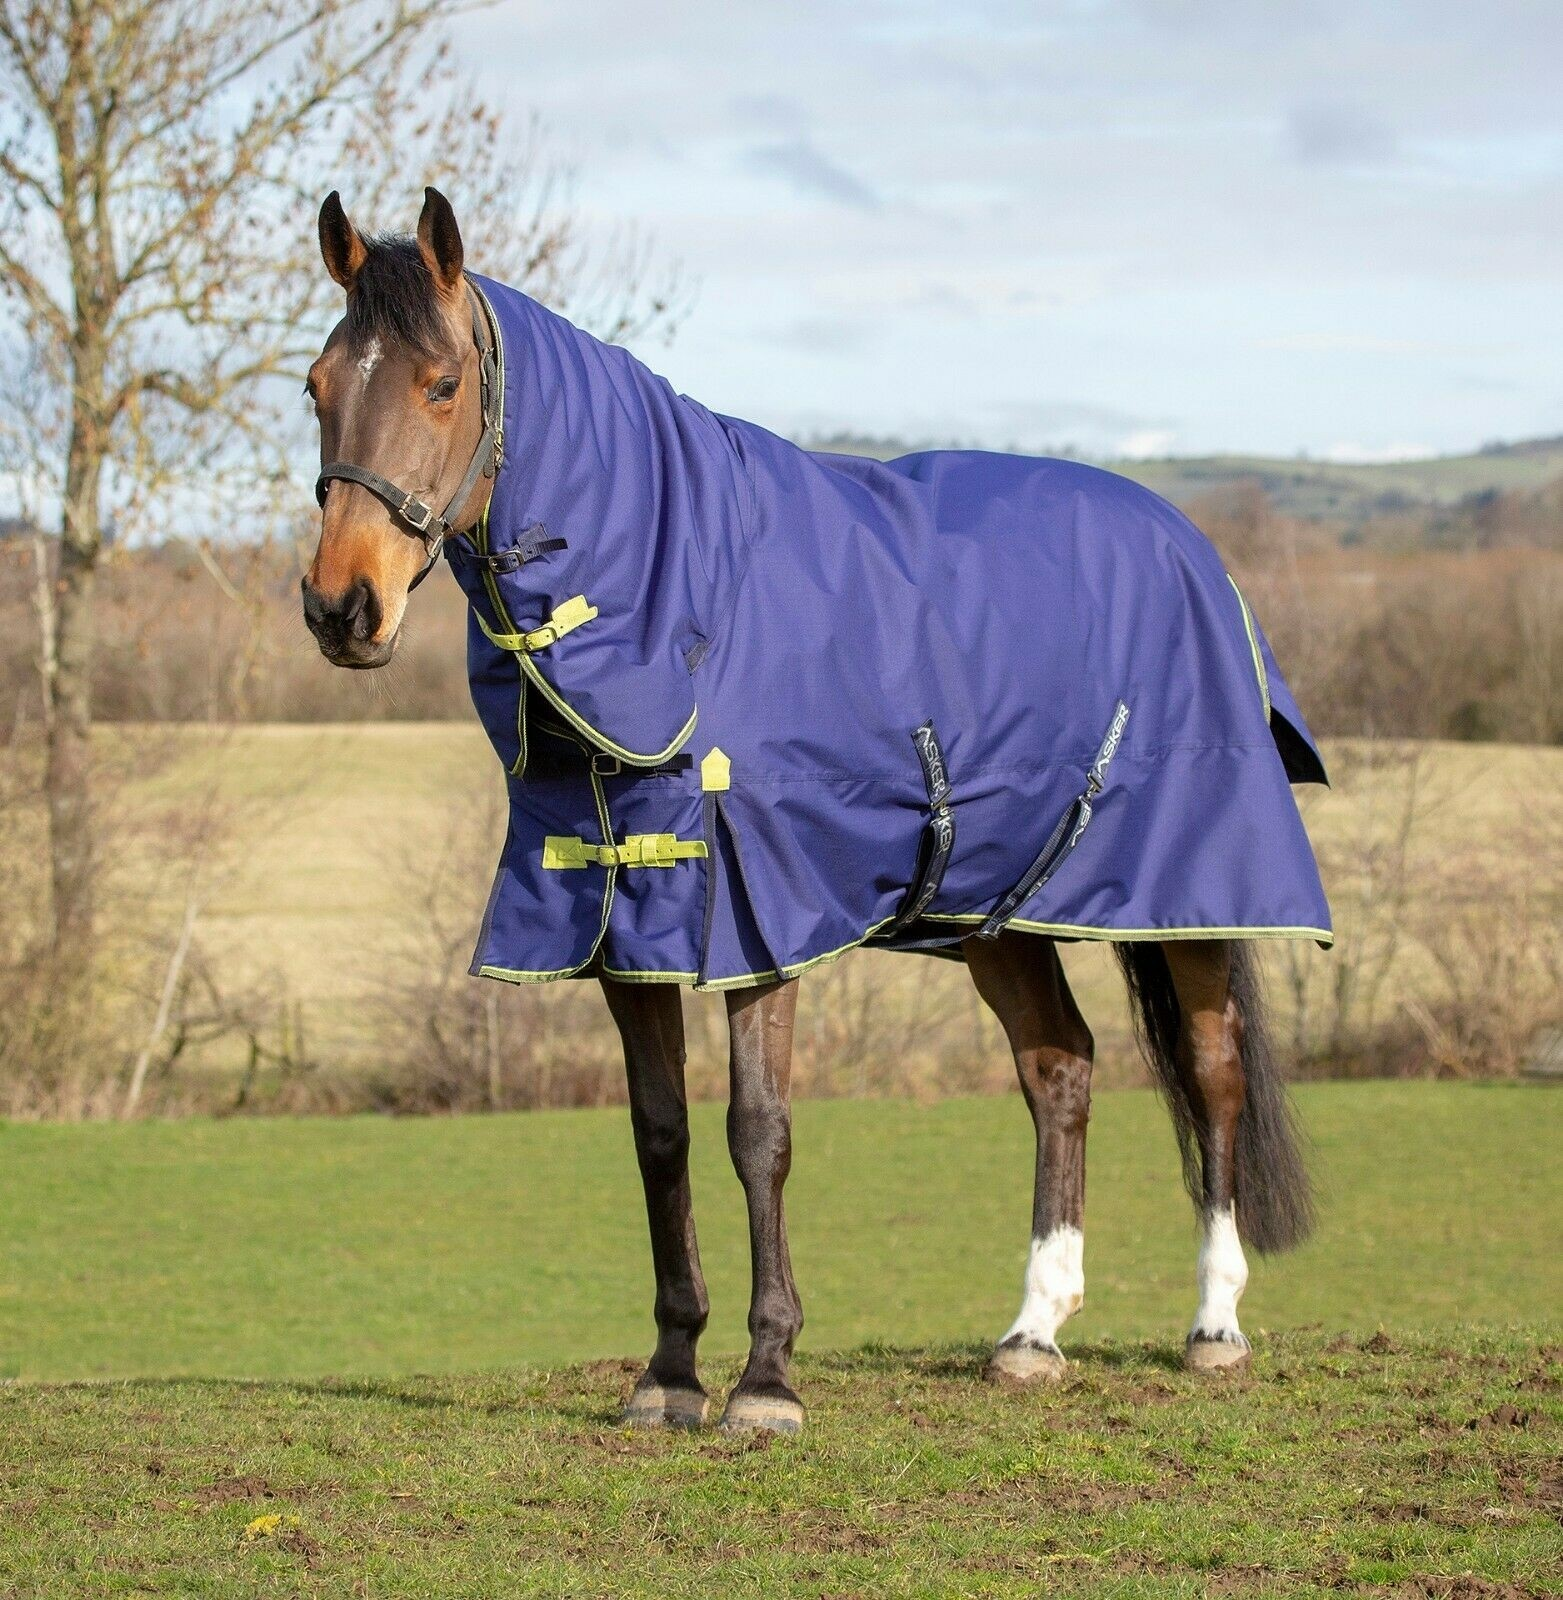 Asker 200g Turnout Rug  - Thomas Irving's equestrian and accessories store  Asker 200g Combo Turnout Rug